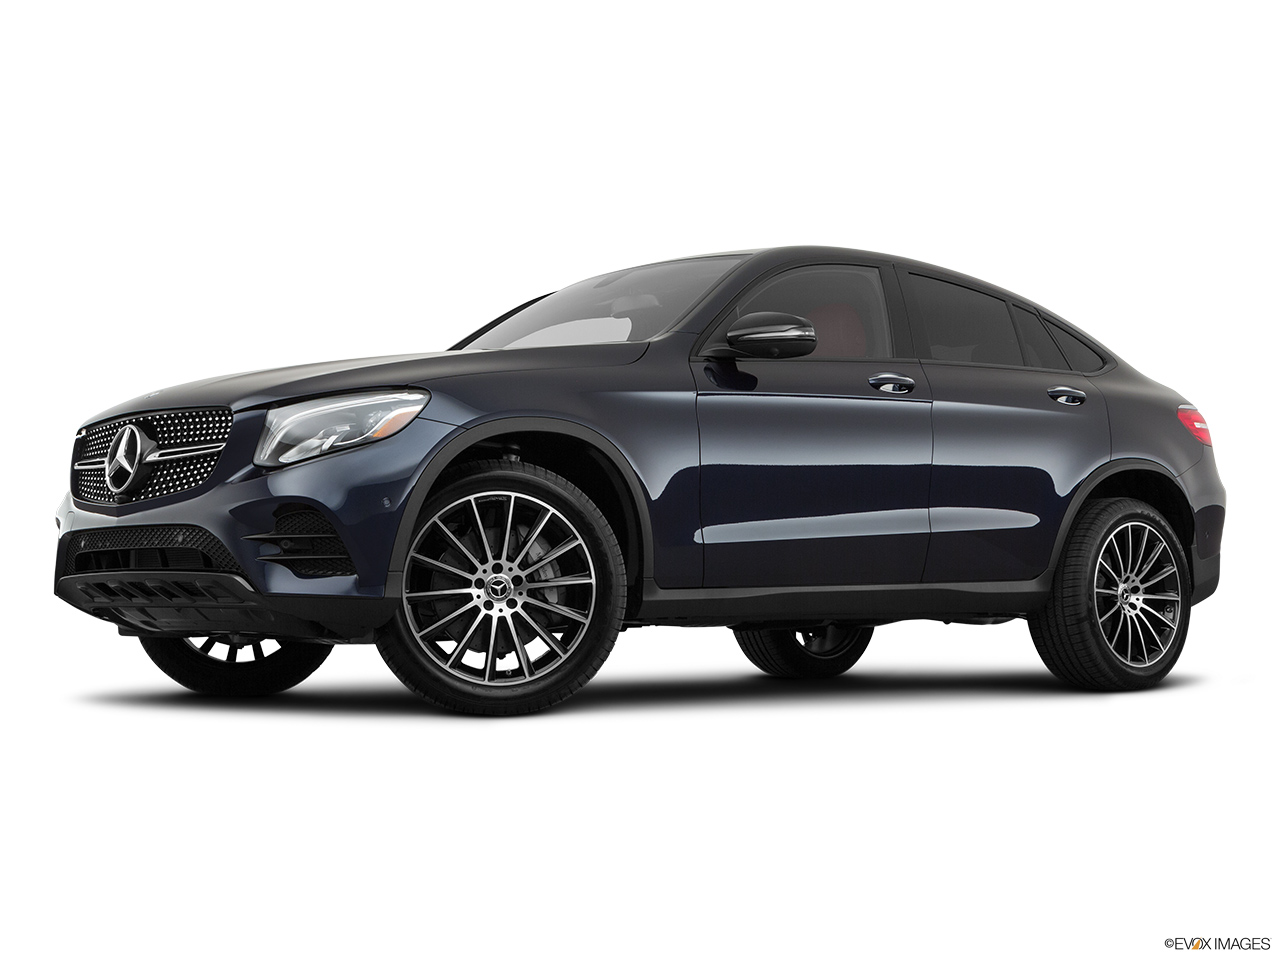 2019 Mercedes-Benz GLC-Class Coupe GLC 300 4MATIC Low/wide front 5/8.